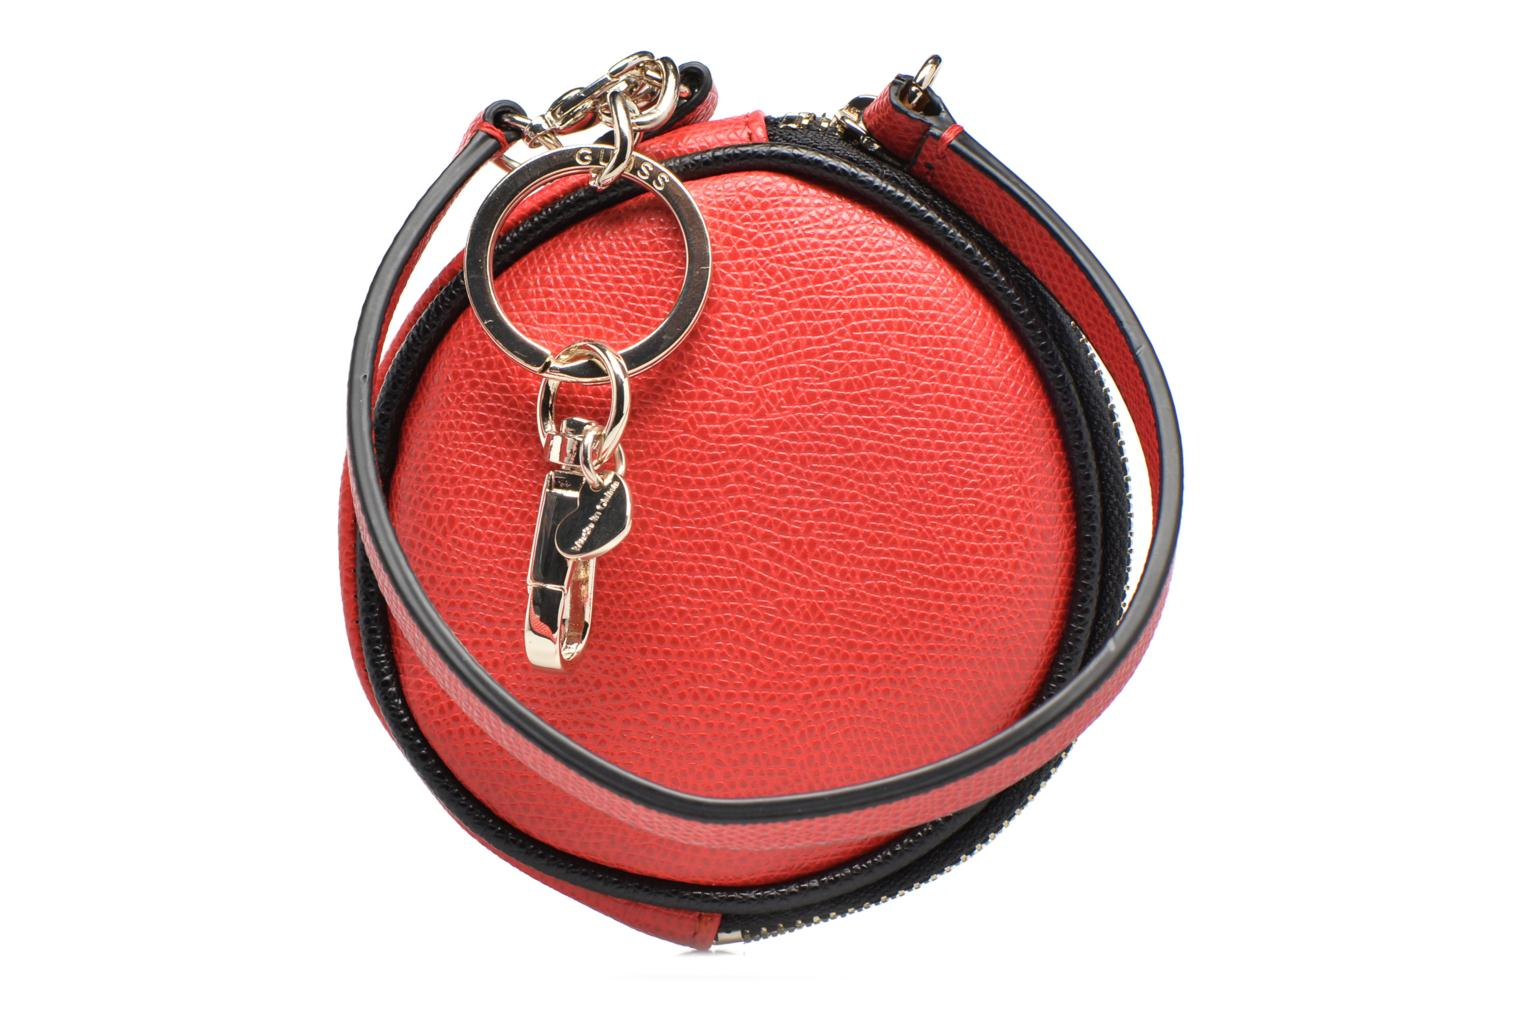 MIX MATCH KEYRING Wristlet keychain Black